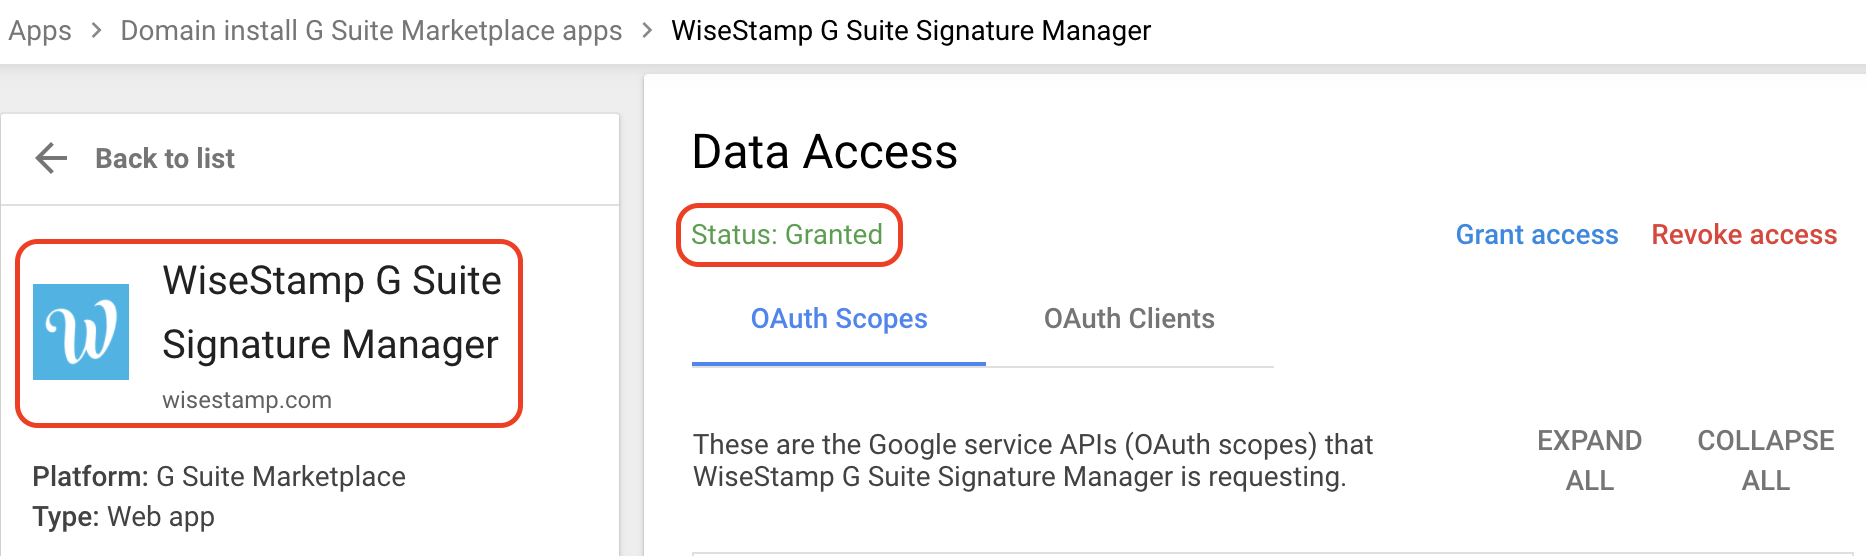 Screenshot of the G Suite Marketplace apps settings for WiseStamp showing the Data status as Granted